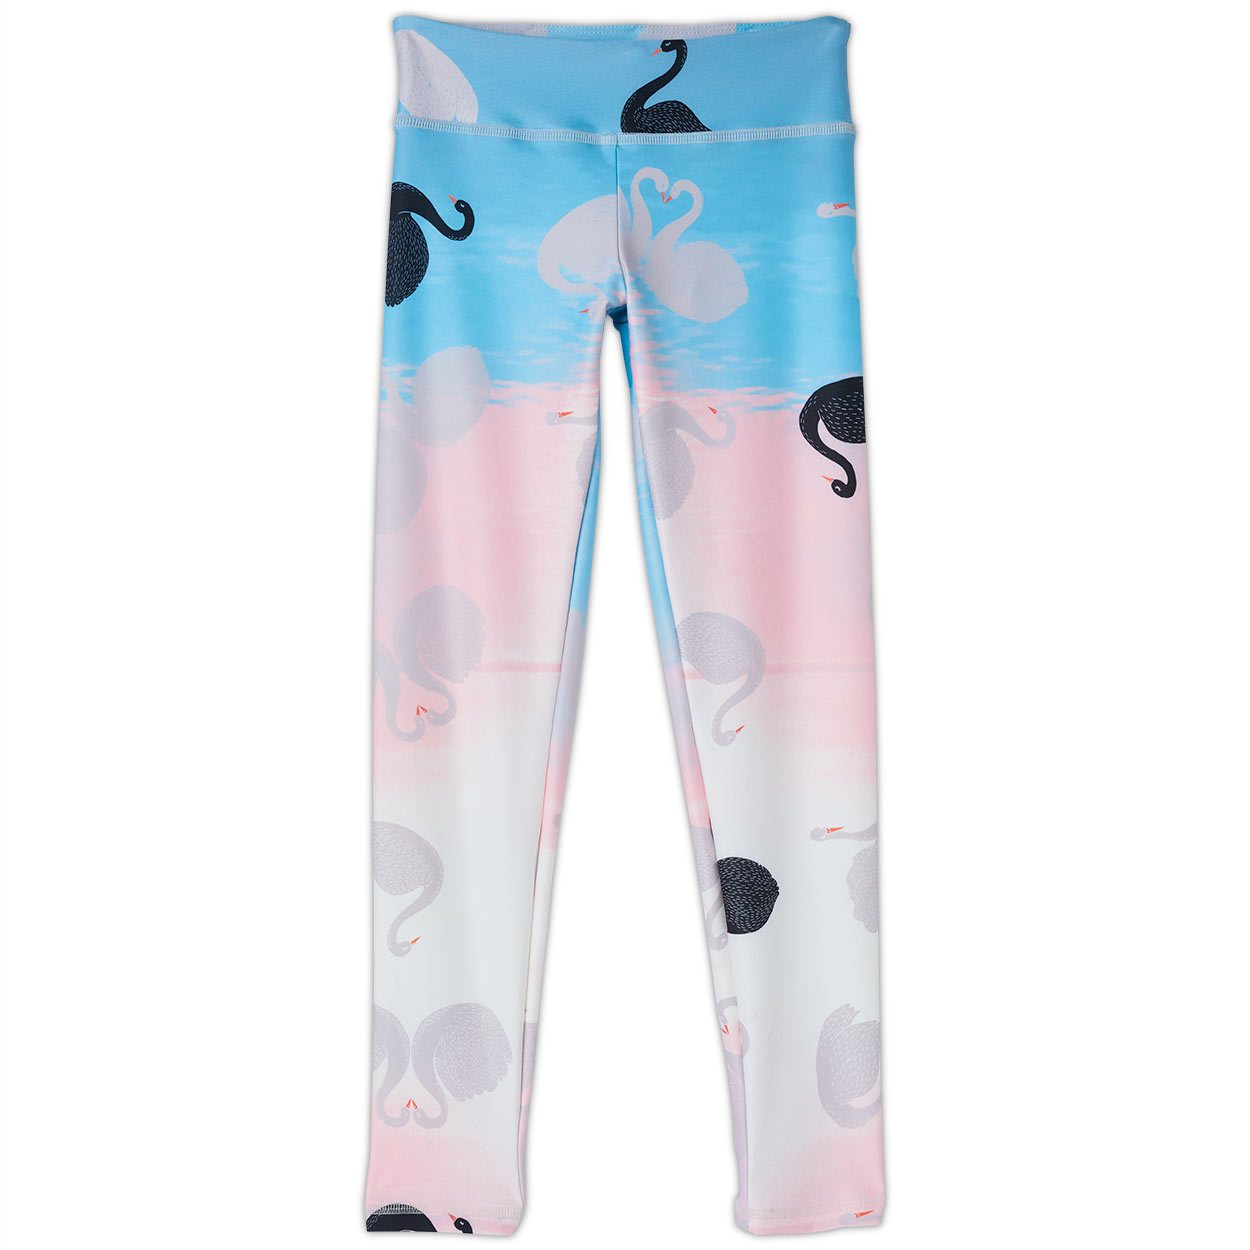 Swans Sunblocker Youth Leggings UPF 50+